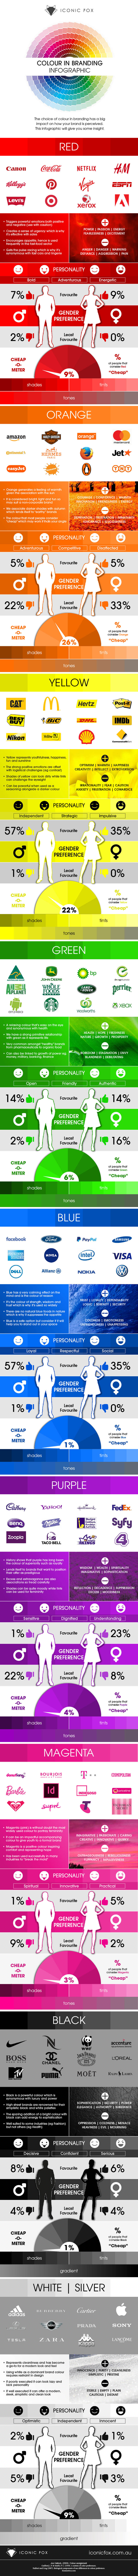 The Psychology of Color and It's Importance in Branding - Infographic